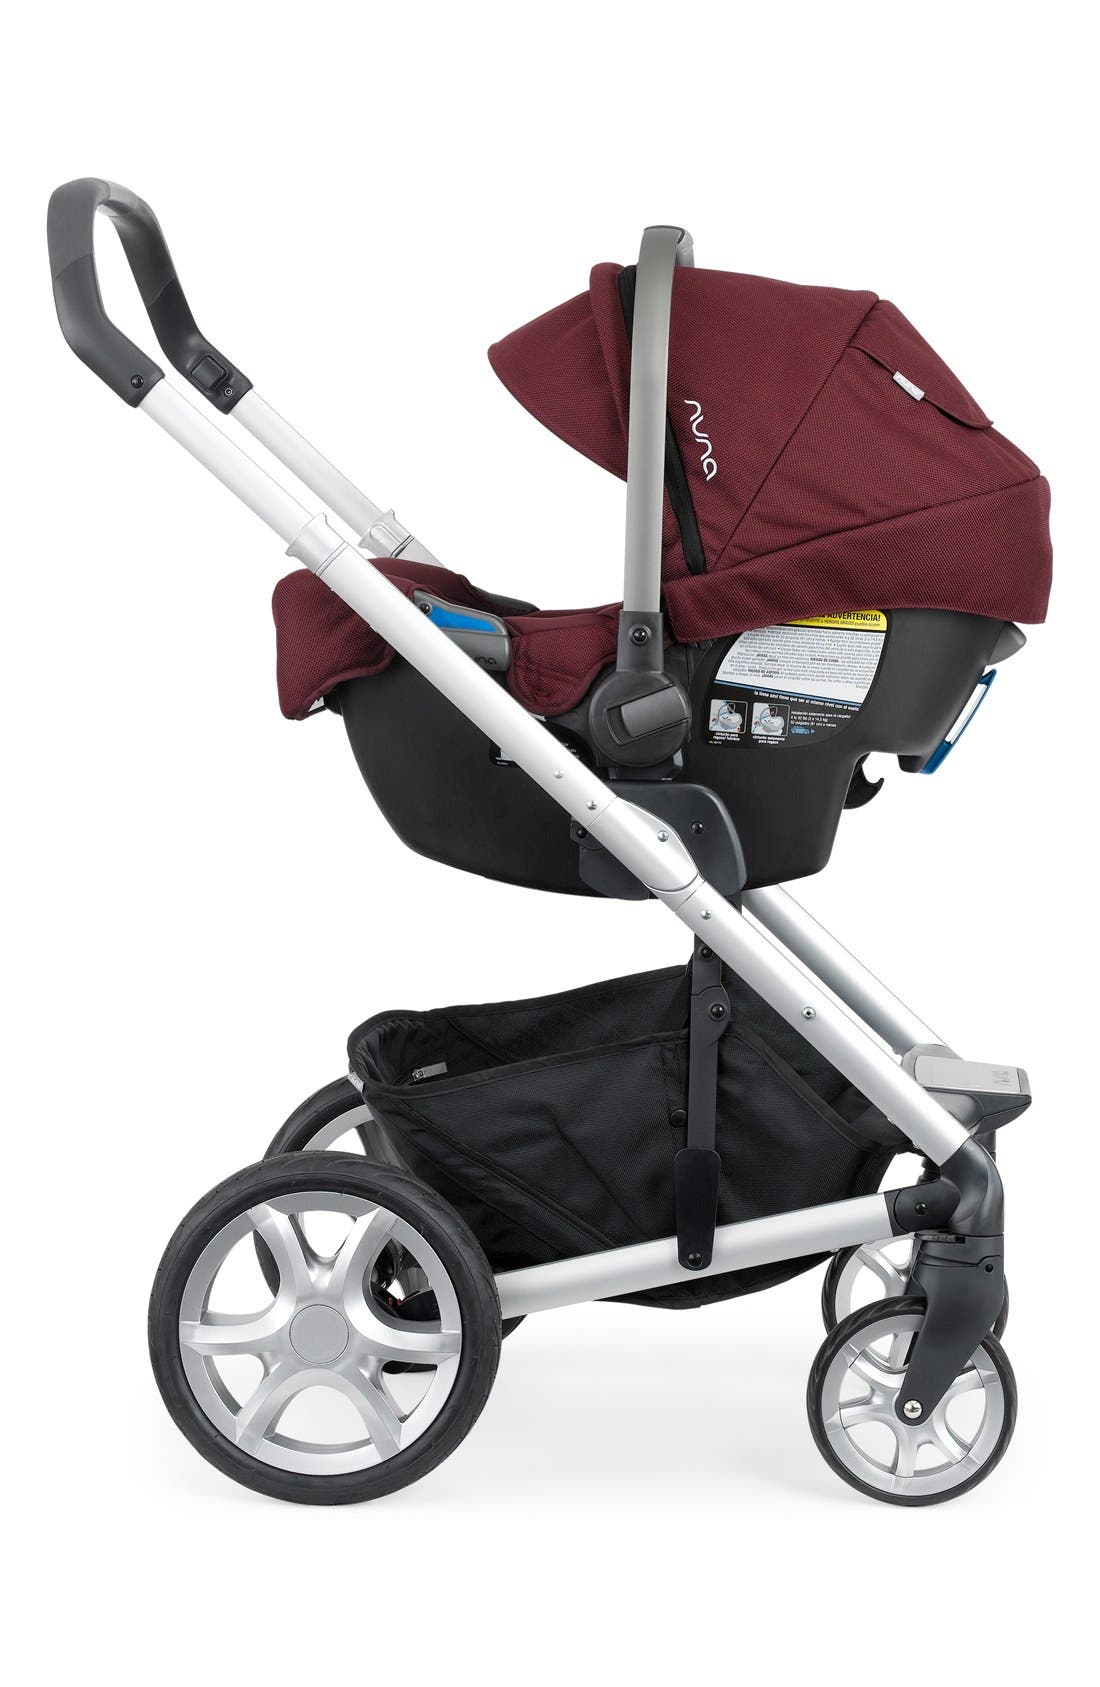 Car Seats Baby Gear & Essentials: Strollers, Diaper Bags & Toys ...